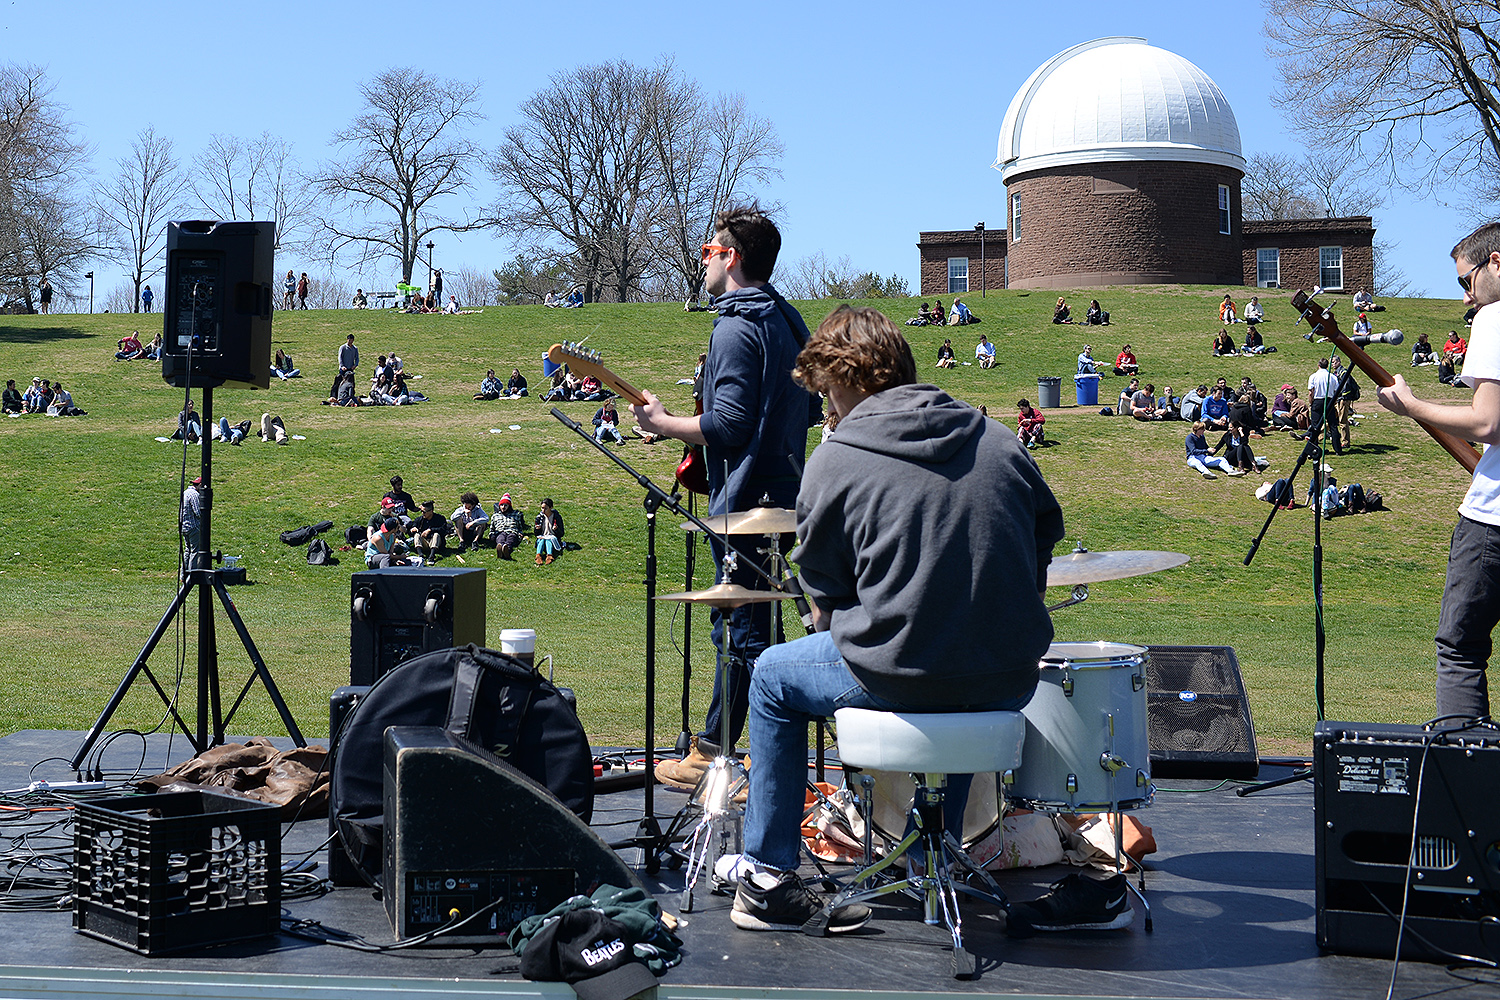 On April 14, admitted students and their families attended a BBQ picnic and concert on Foss Hill. Seven Wesleyan student bands performed for the audience.